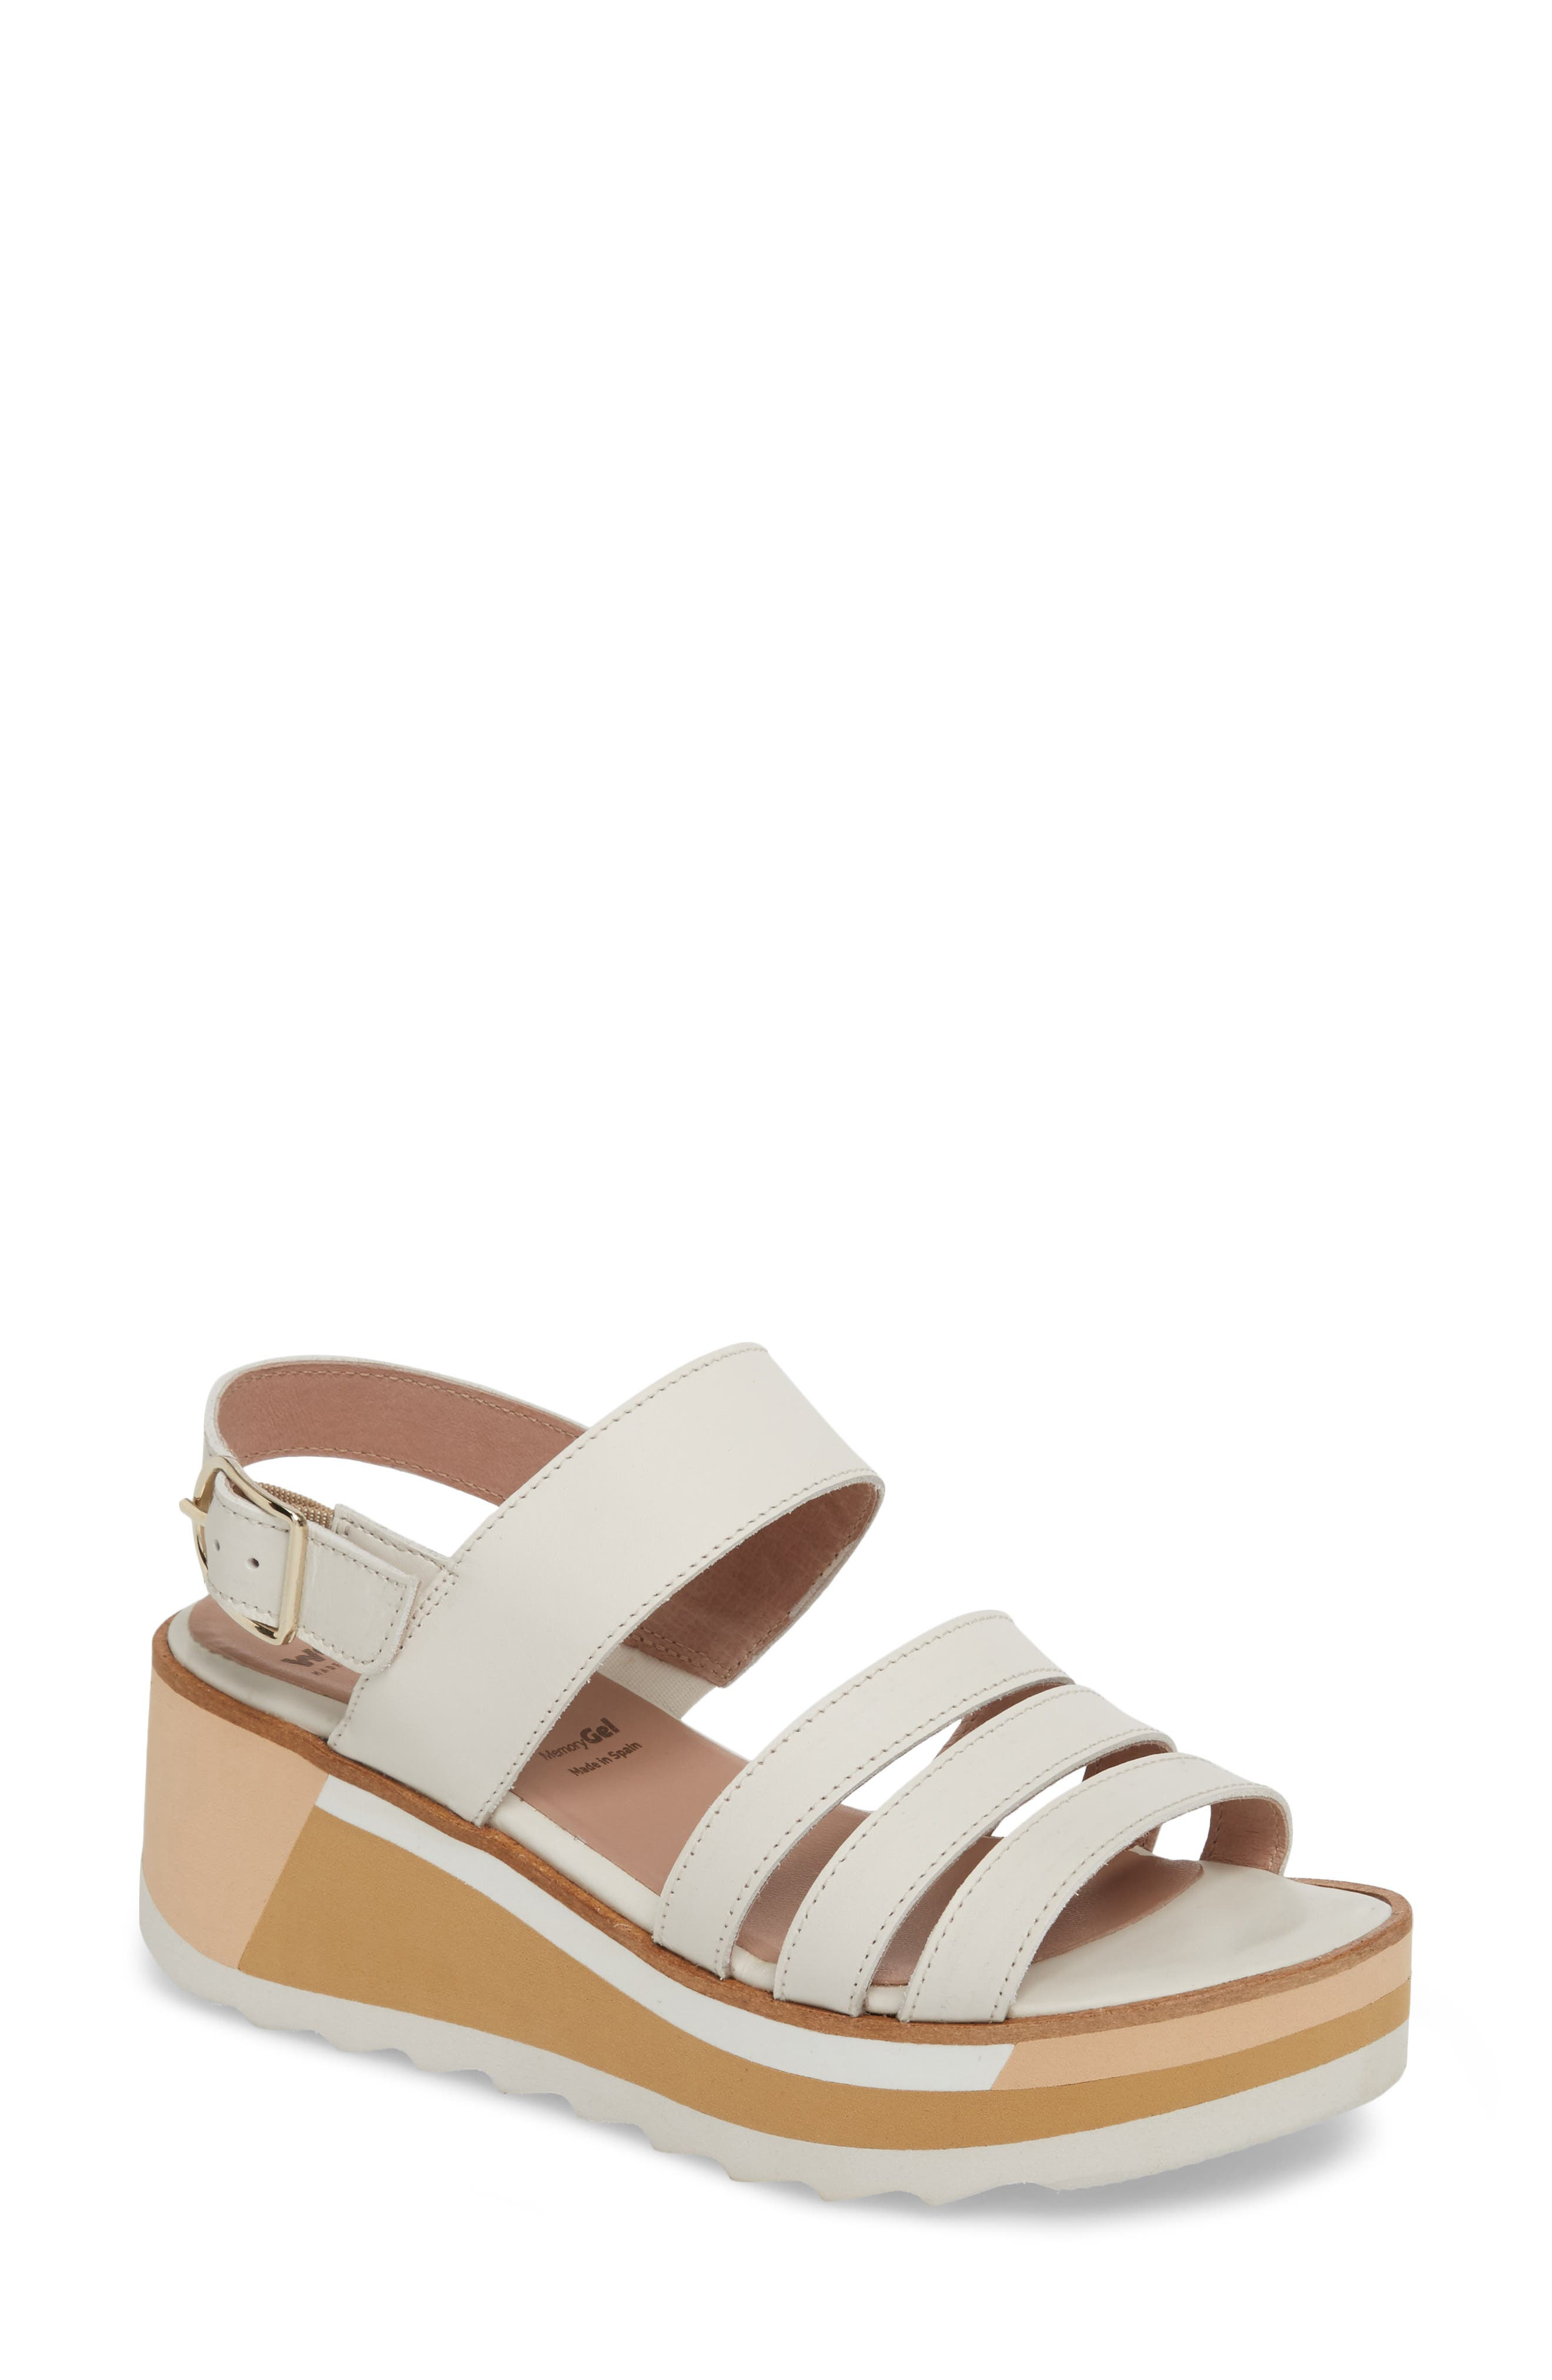 Wonders Slingback Wedge Sandal, White